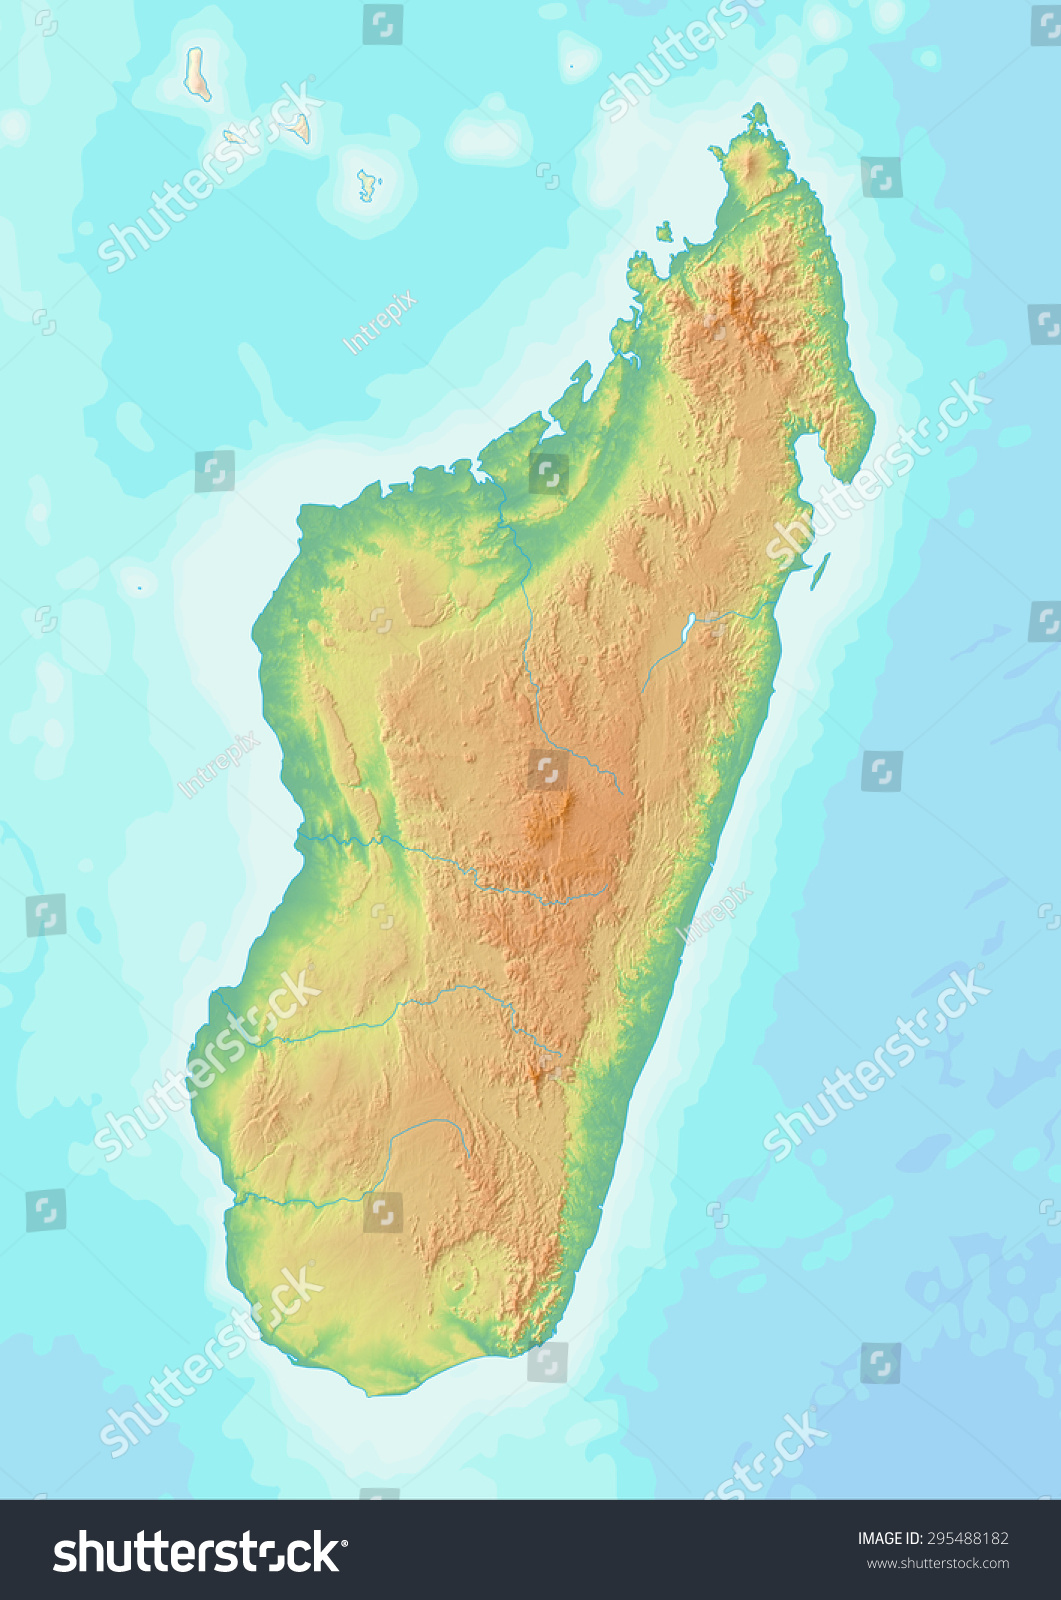 Topographic Map Of Madagascar.Royalty Free Stock Illustration Of Topographic Map Madagascar Shaded